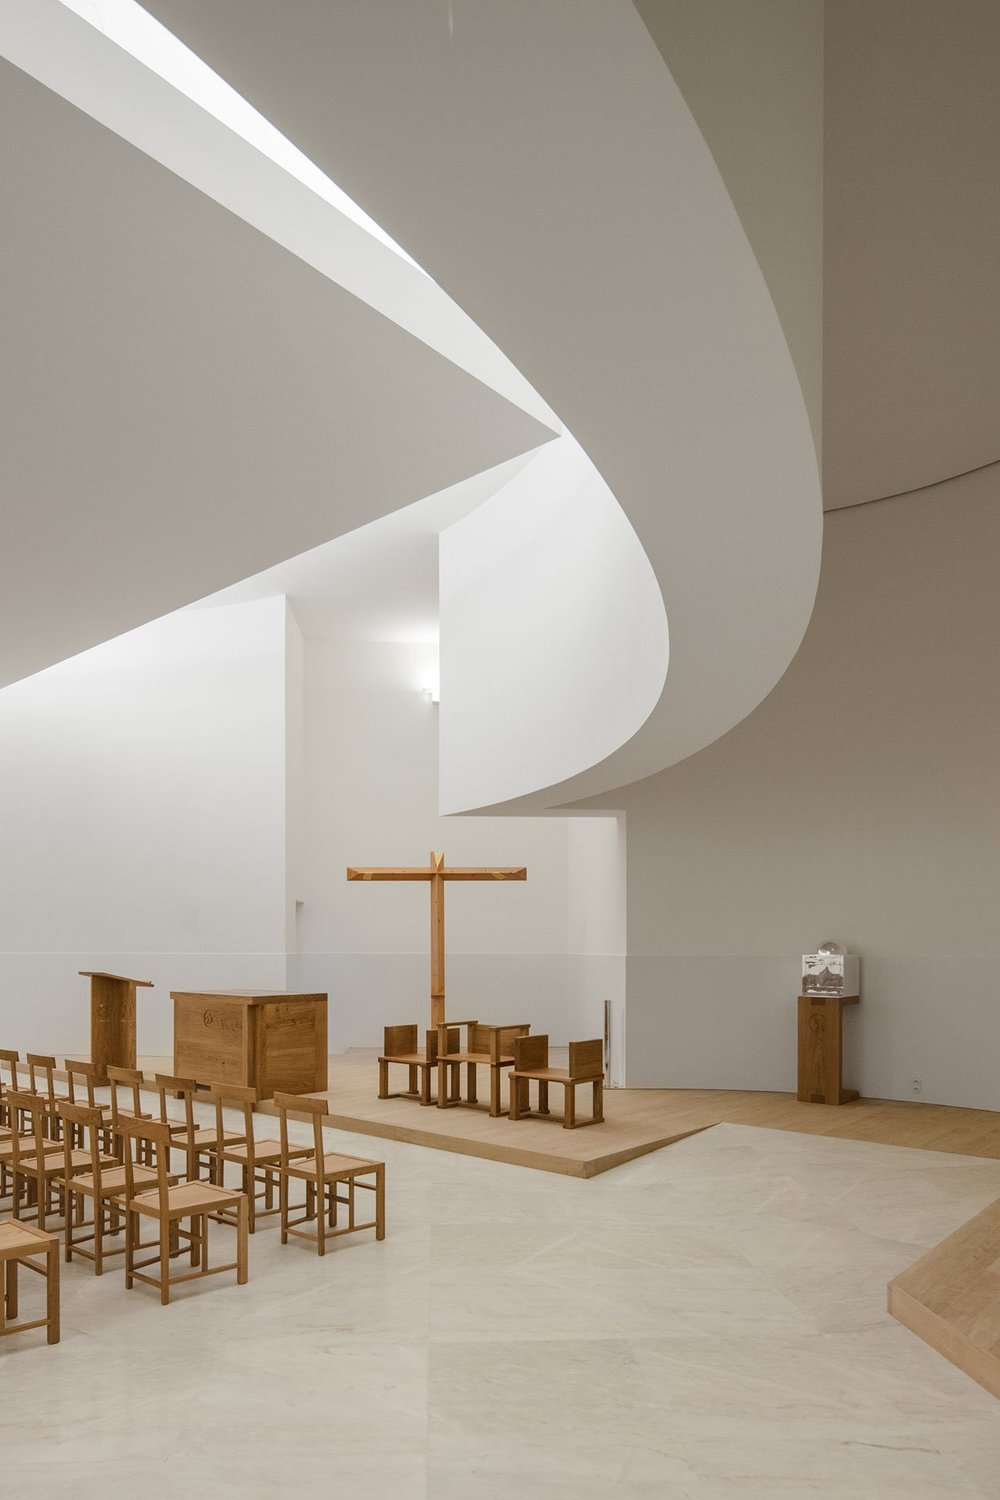 s5_church_of_saint_jacques_de_la_lande_rennes_france_alvaro_siza_vieira_dezainaa_3.jpg